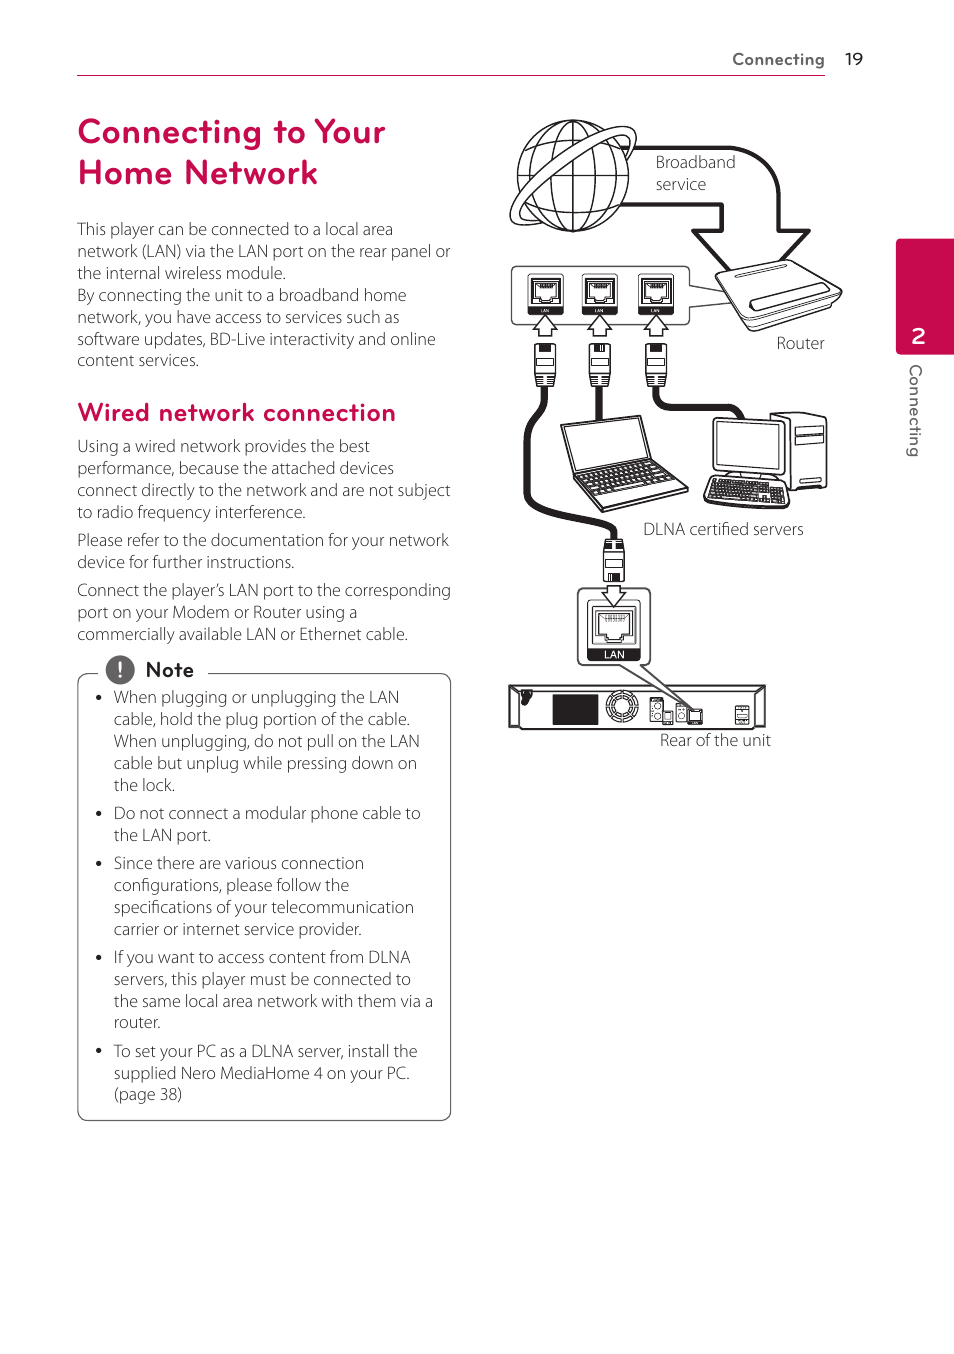 Connecting To Your Home Network Wired Connection Diagram Setup Lg Bh6730s